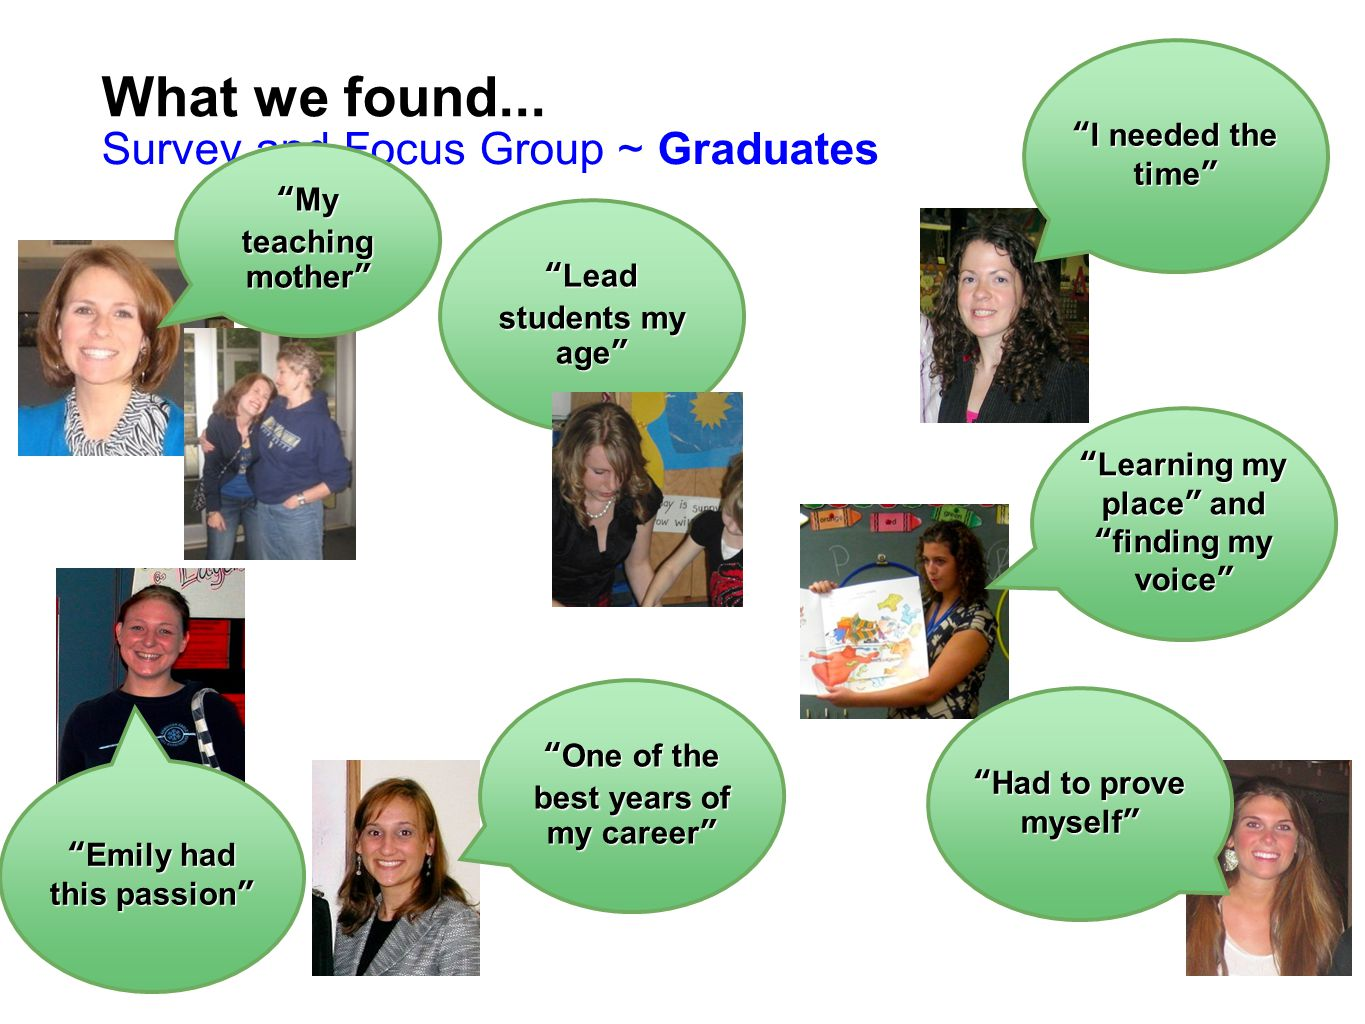 What we found... Survey and Focus Group ~ Graduates